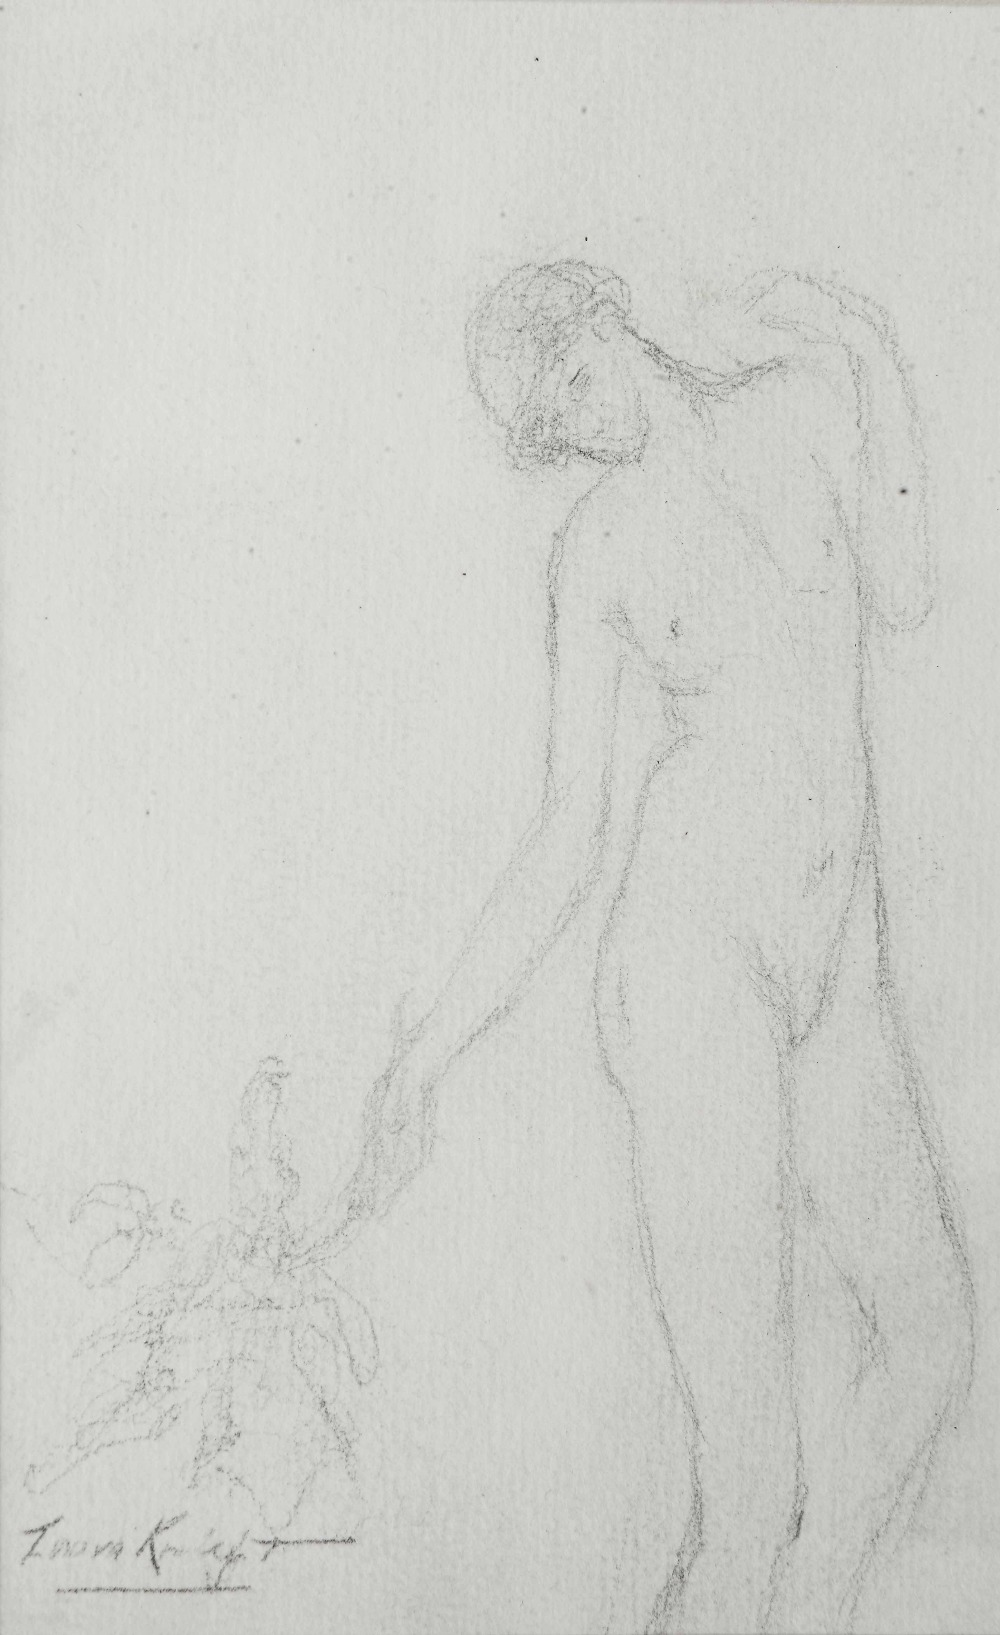 Lot 250 - CIRLE OF LAURA KNIGHT (1877-1970) A female classical dancer, bears signature, pencil drawing, 16.5 x